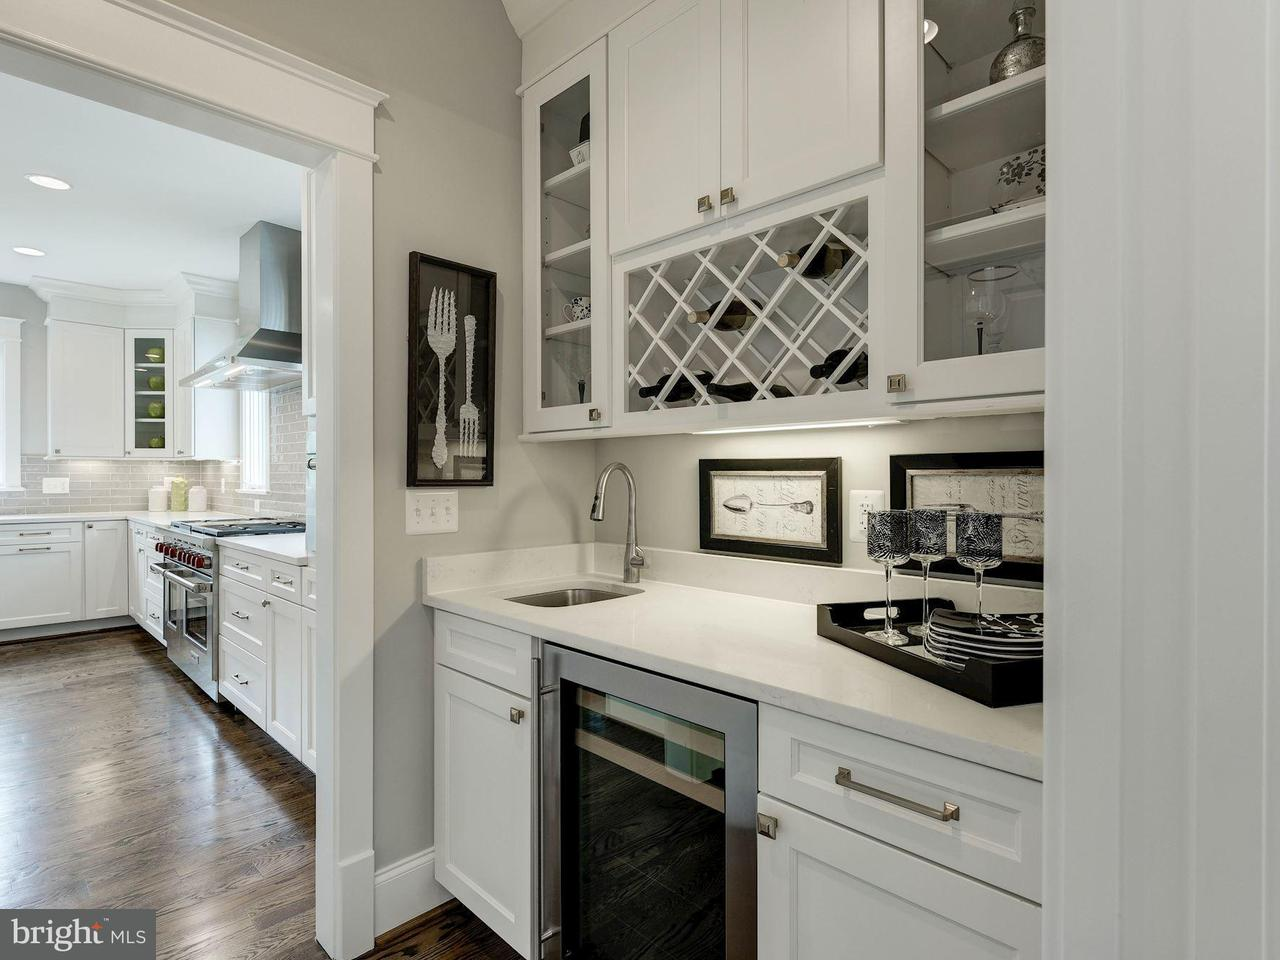 Additional photo for property listing at 6808 31st St N  Arlington, Virginia 22213 United States